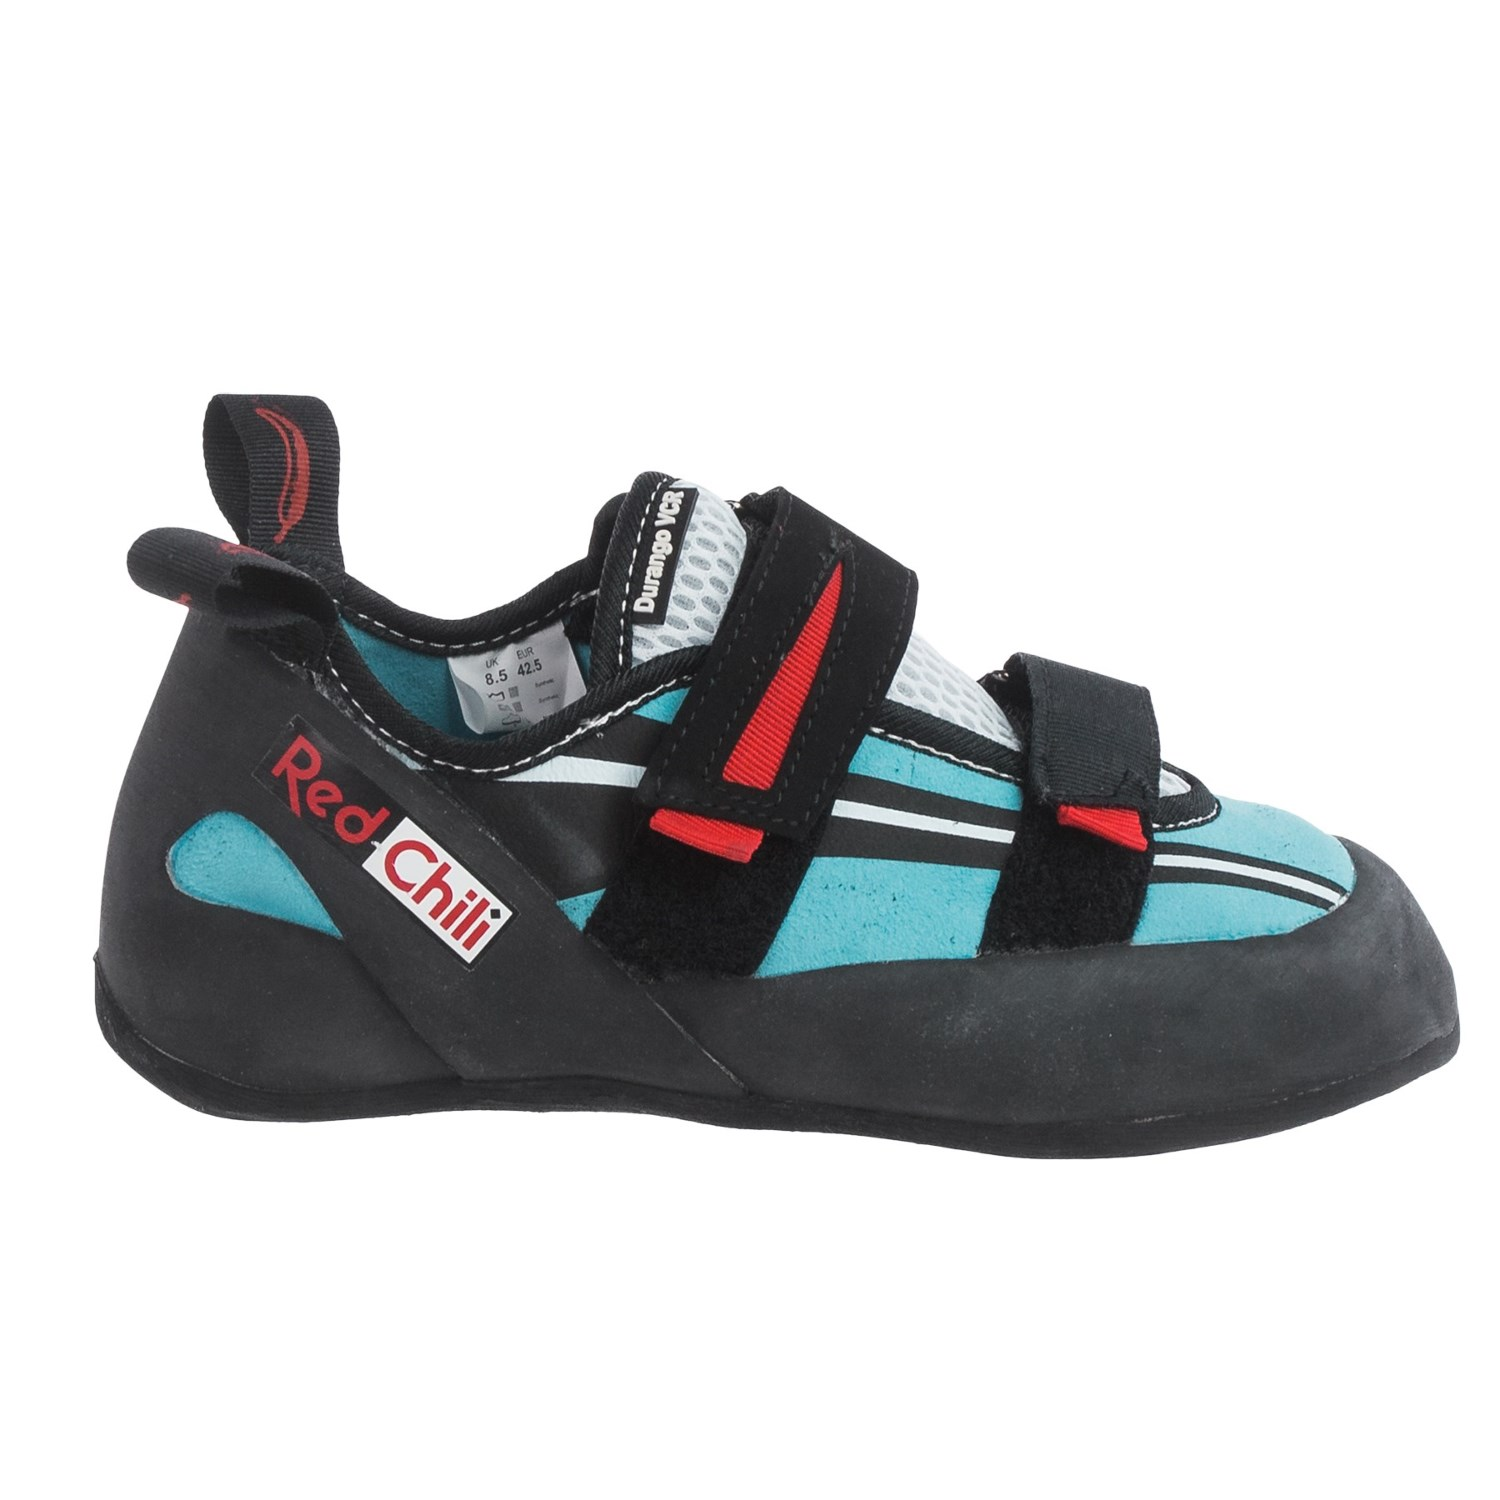 red chili durango vcr climbing shoes for men save 29. Black Bedroom Furniture Sets. Home Design Ideas